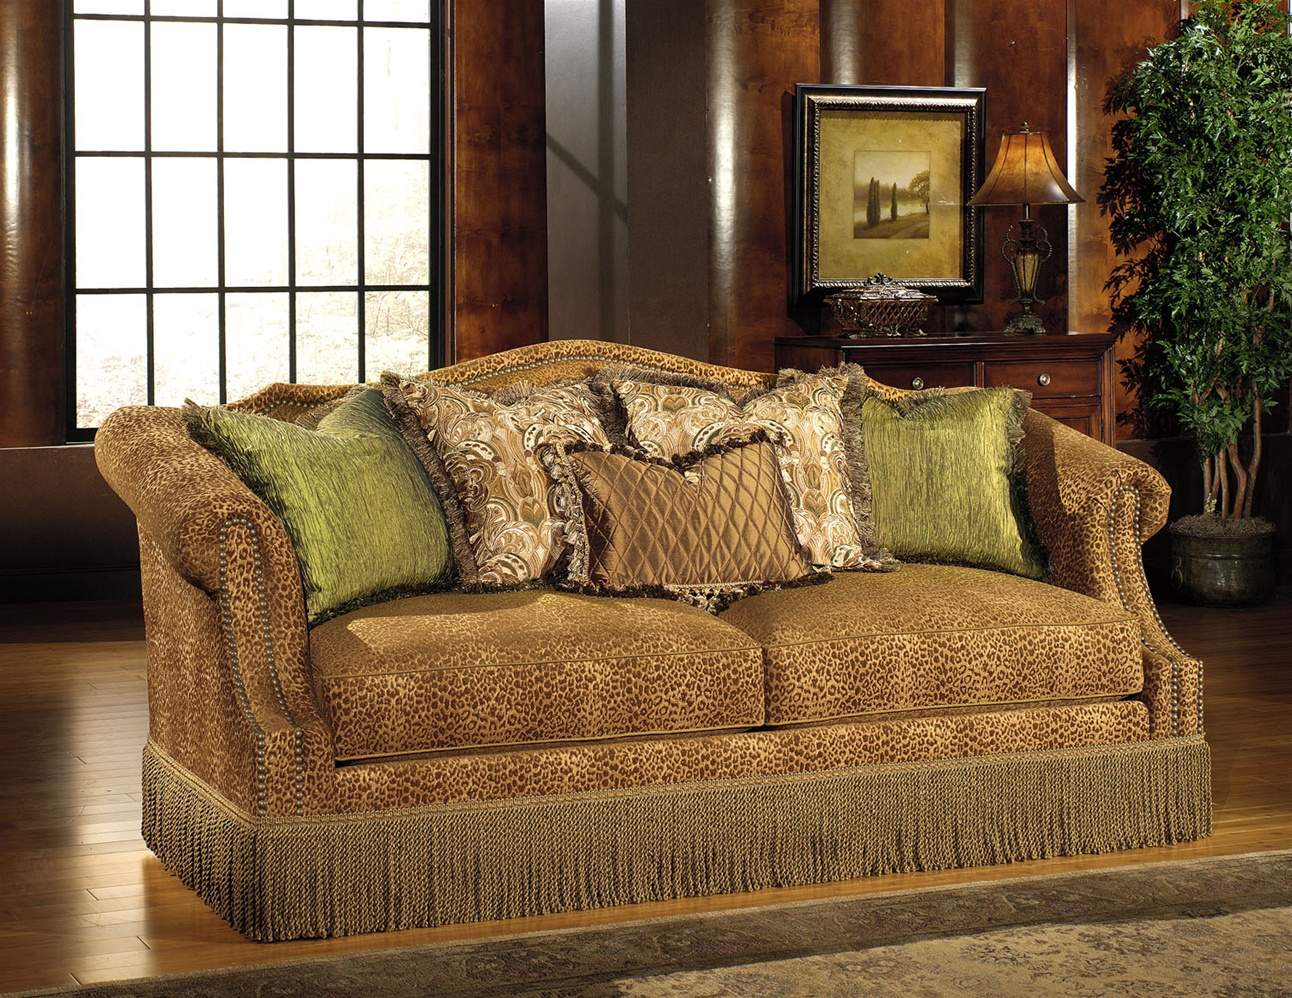 Upholstered sofas and loveseats pottery barn amalie upholstered loveseat 64 2 049 liked on thesofa Upholstered sofas and loveseats